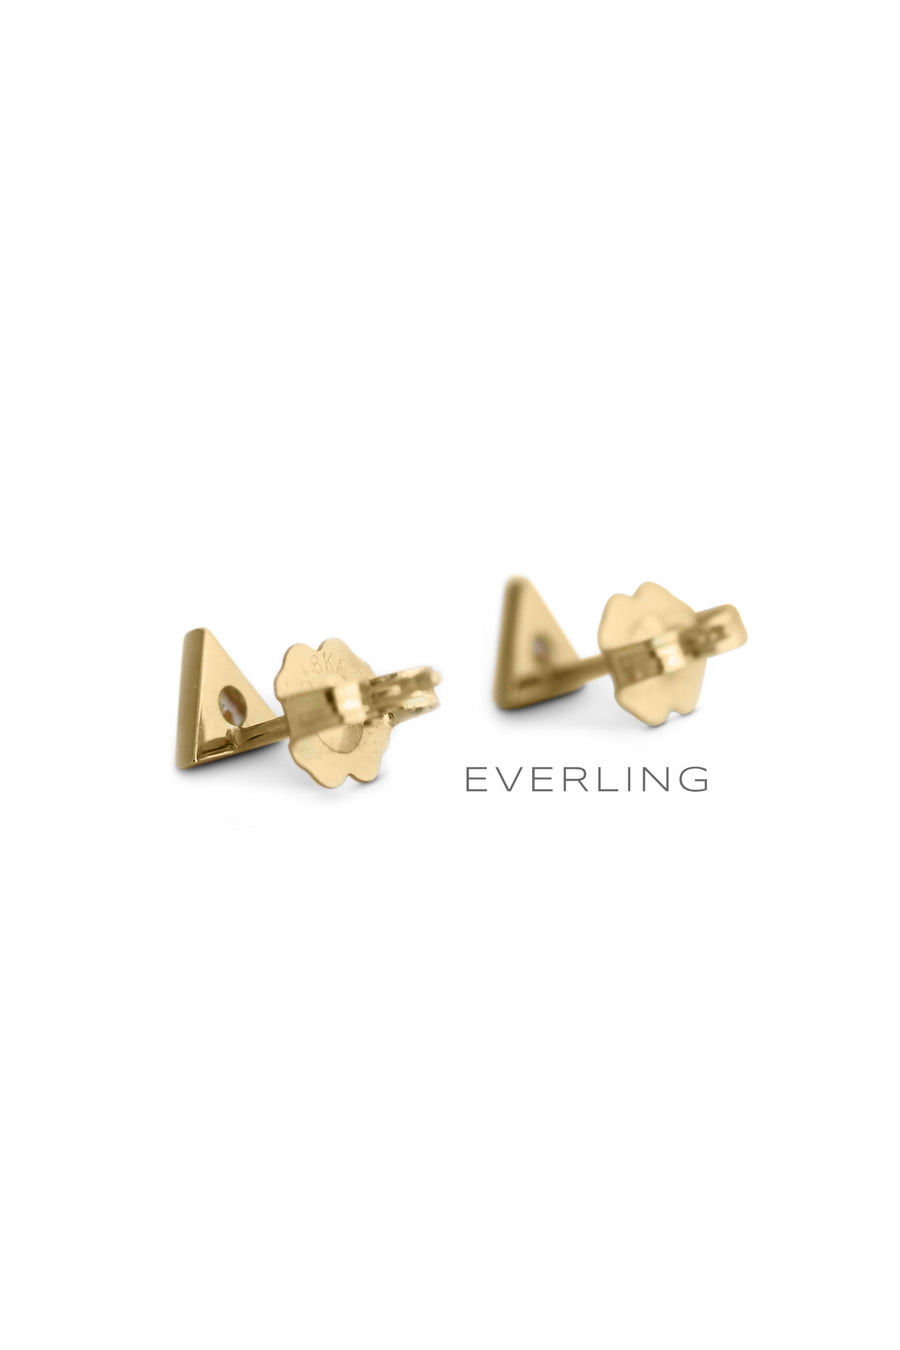 back- Recycled 18k Yellow Gold triangle cut diamond bezel stud earrings. #designerjewelry www.everlingjewelry.com